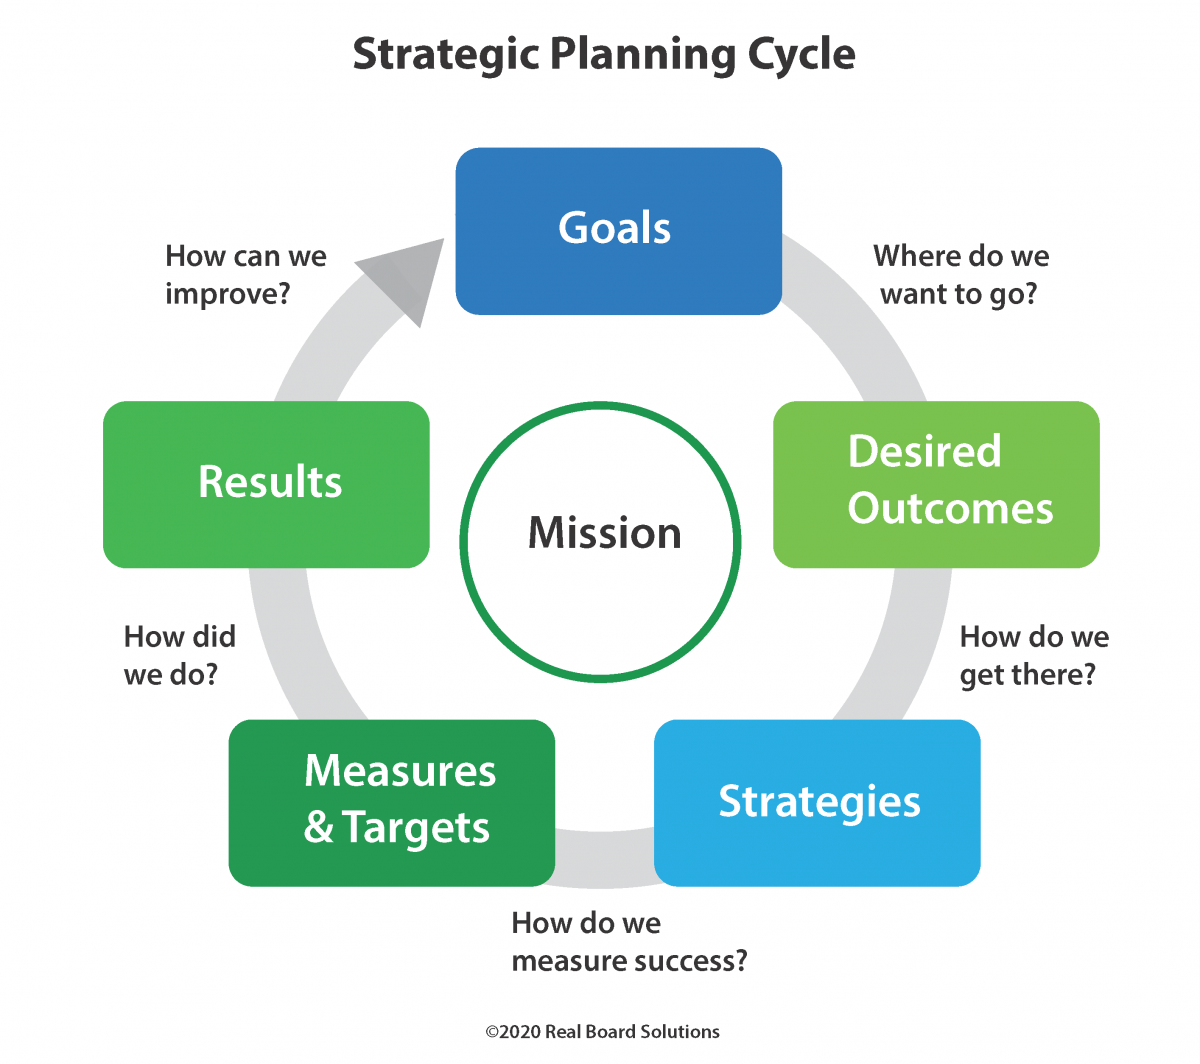 Strategic Planning During the COVID-19 Era